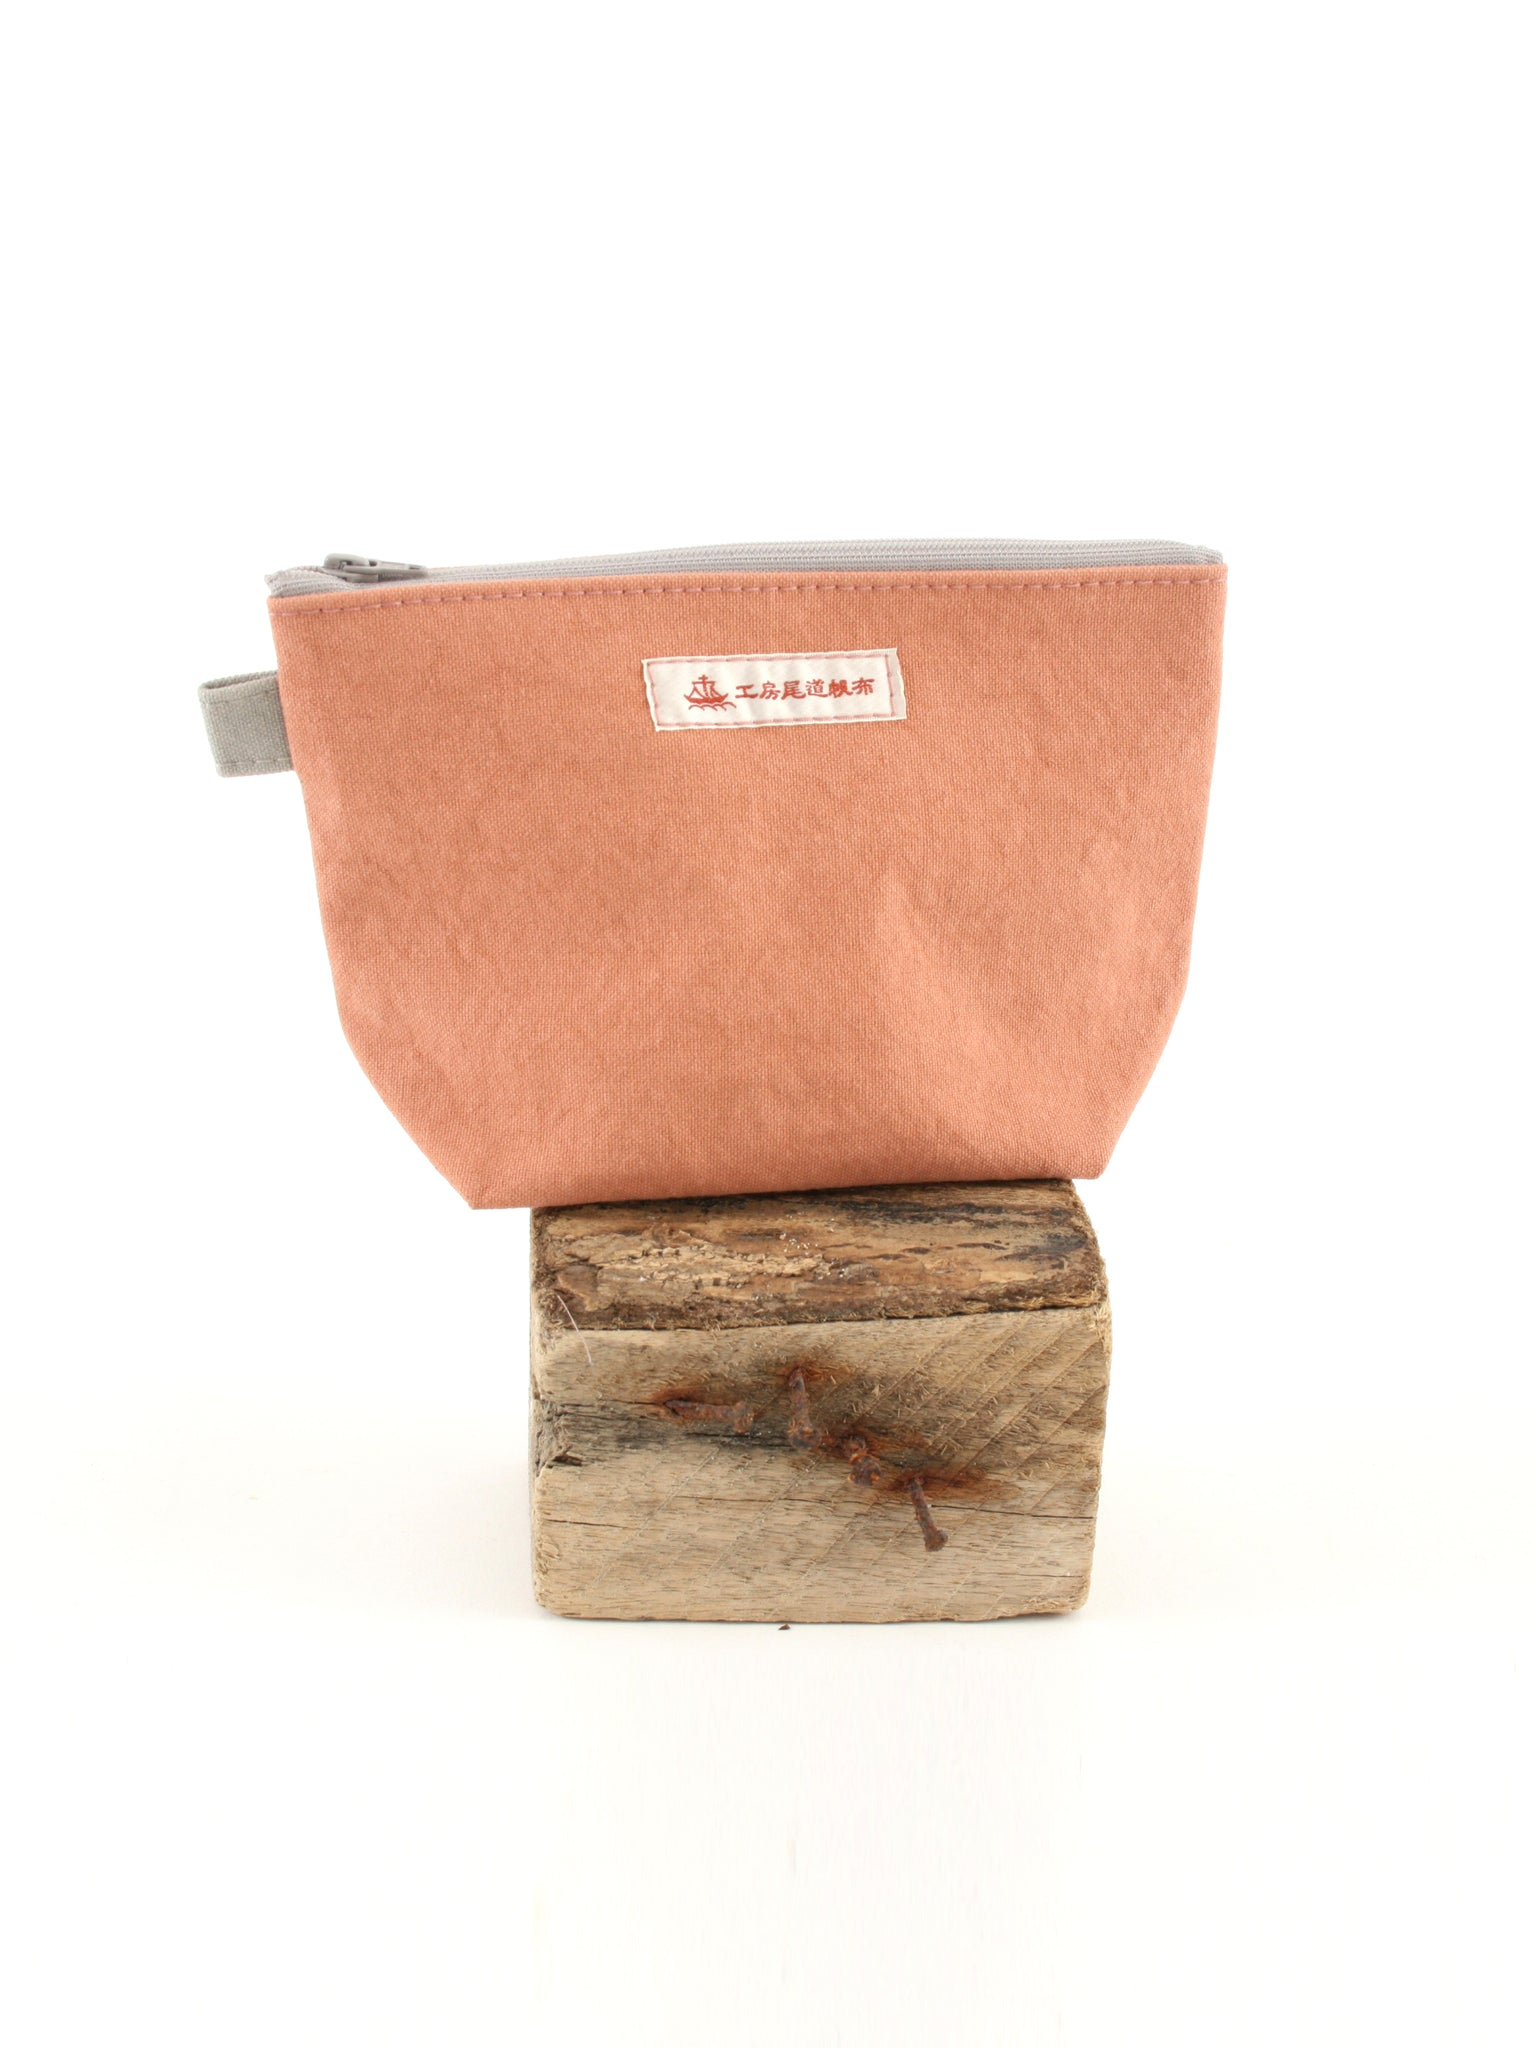 Onomichi Hanpu Make-up Pouch salmon pink